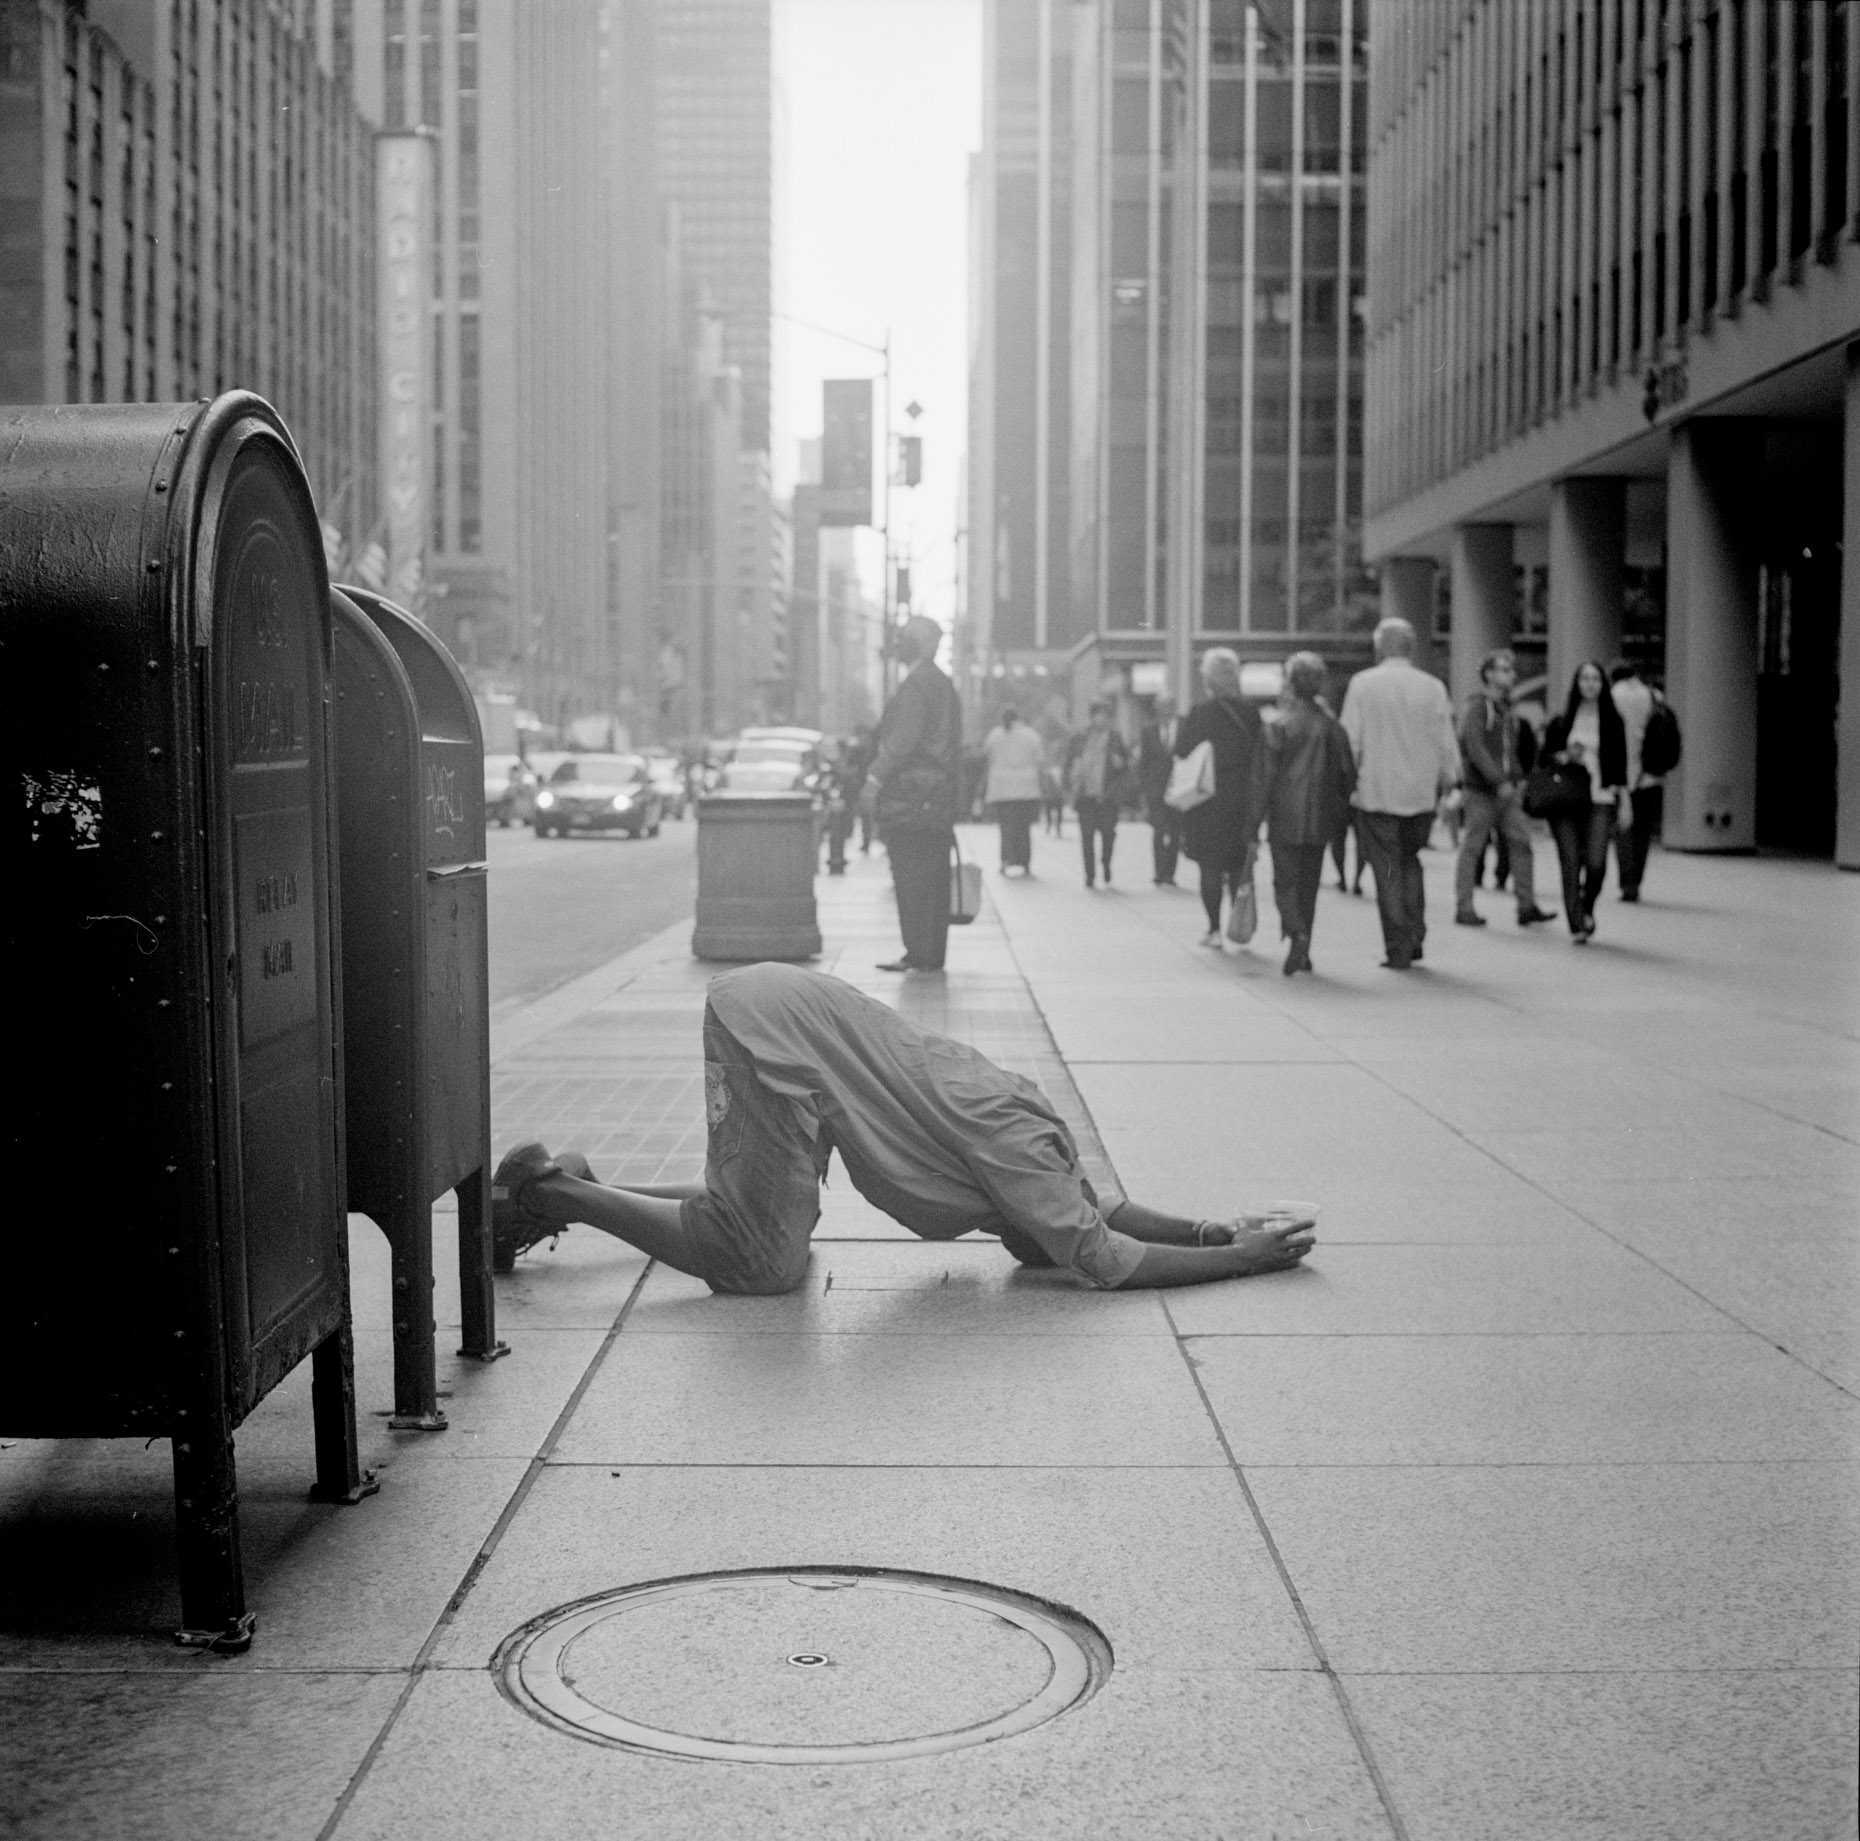 A black and white street image of a man praying in the streets of Midtown Manhattan, New York City.